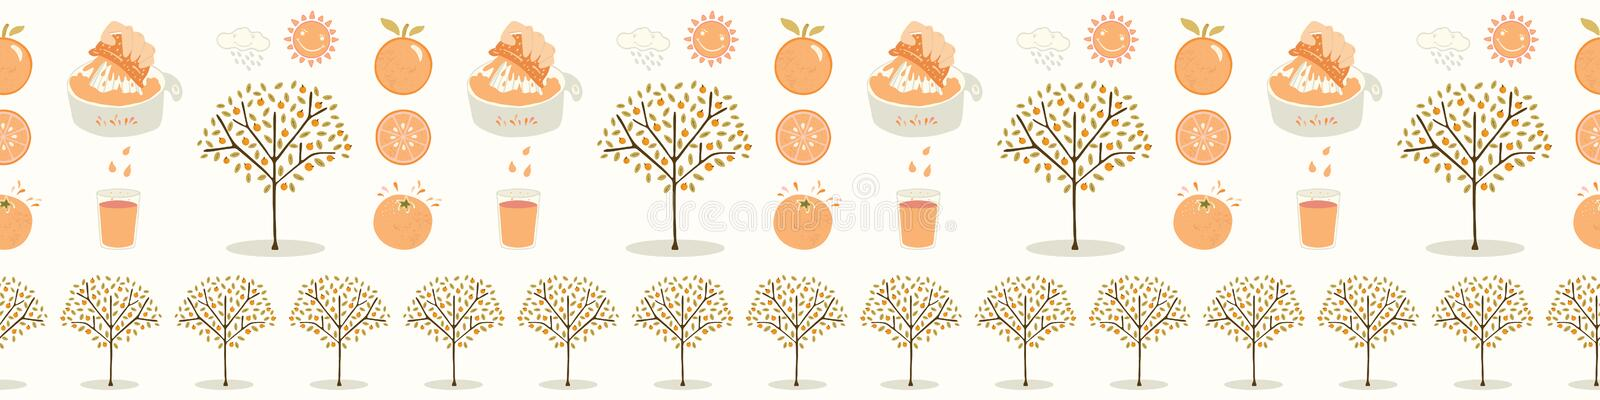 Vector orange tree grove. Hand drawn seamless vector border illustration. Organic garden with juicy oranges, citrus fruit. Freshly squeezed juice for growing royalty free illustration